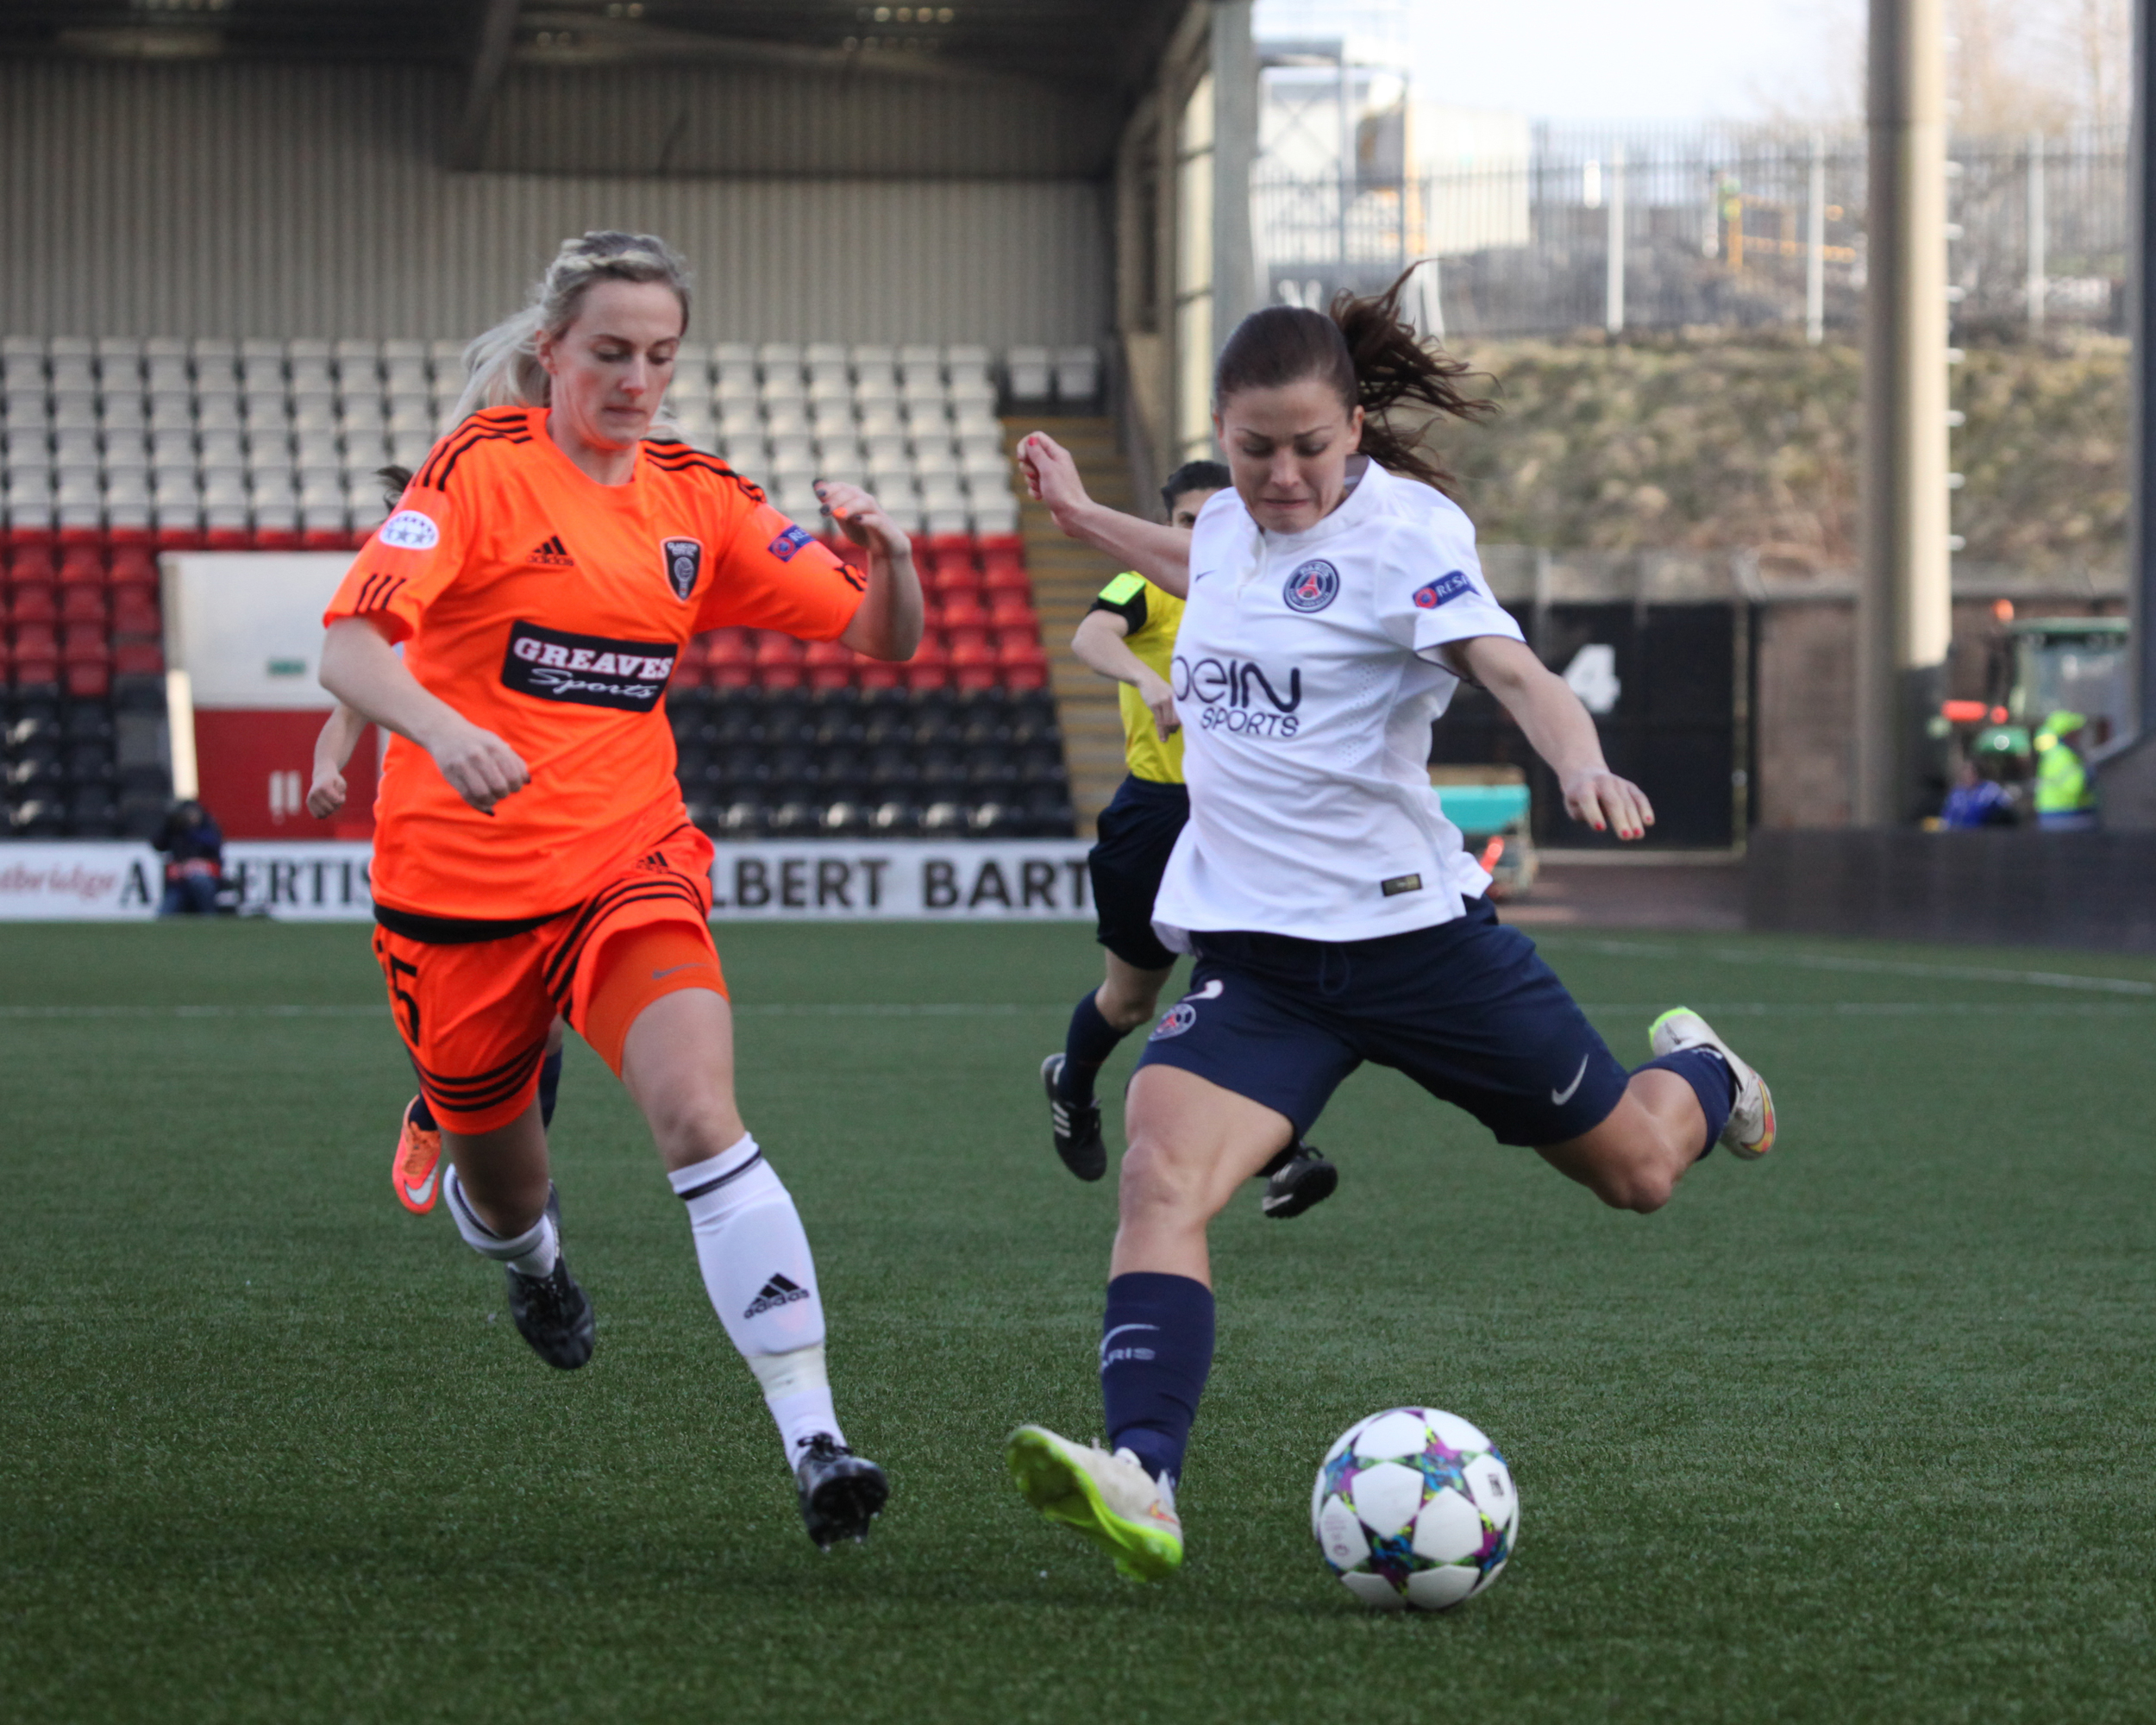 Emma Black in UWCL game v PSG. Image by Andy Buist